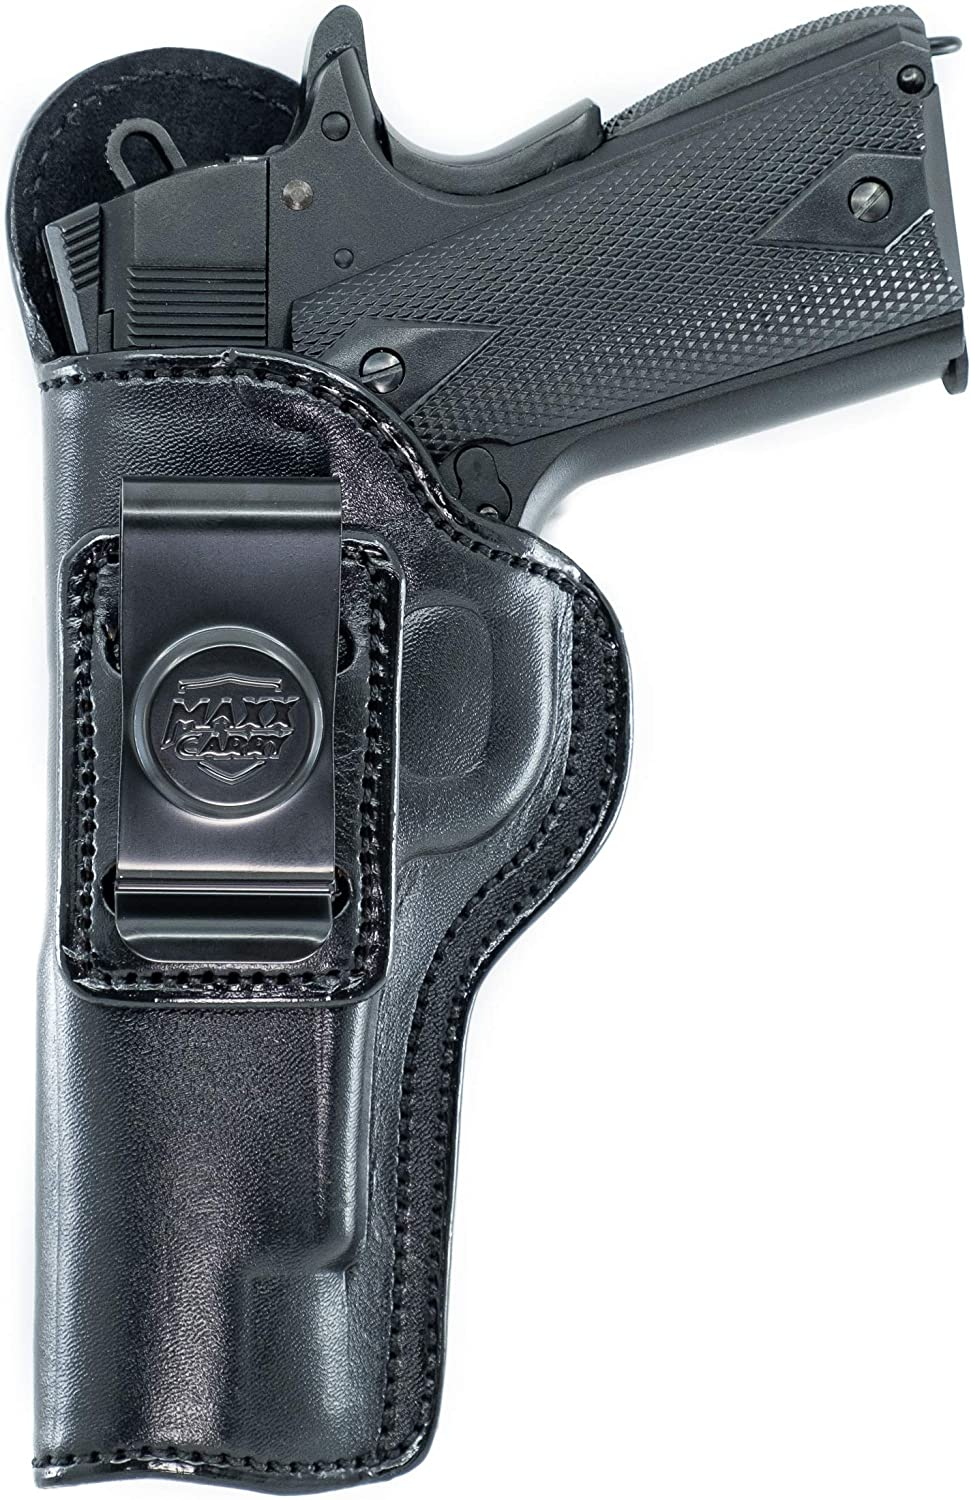 Maxx Carry IWB Leather Gun Holster for Max Sale 60% OFF 5 Full 1911 Taurus Size i